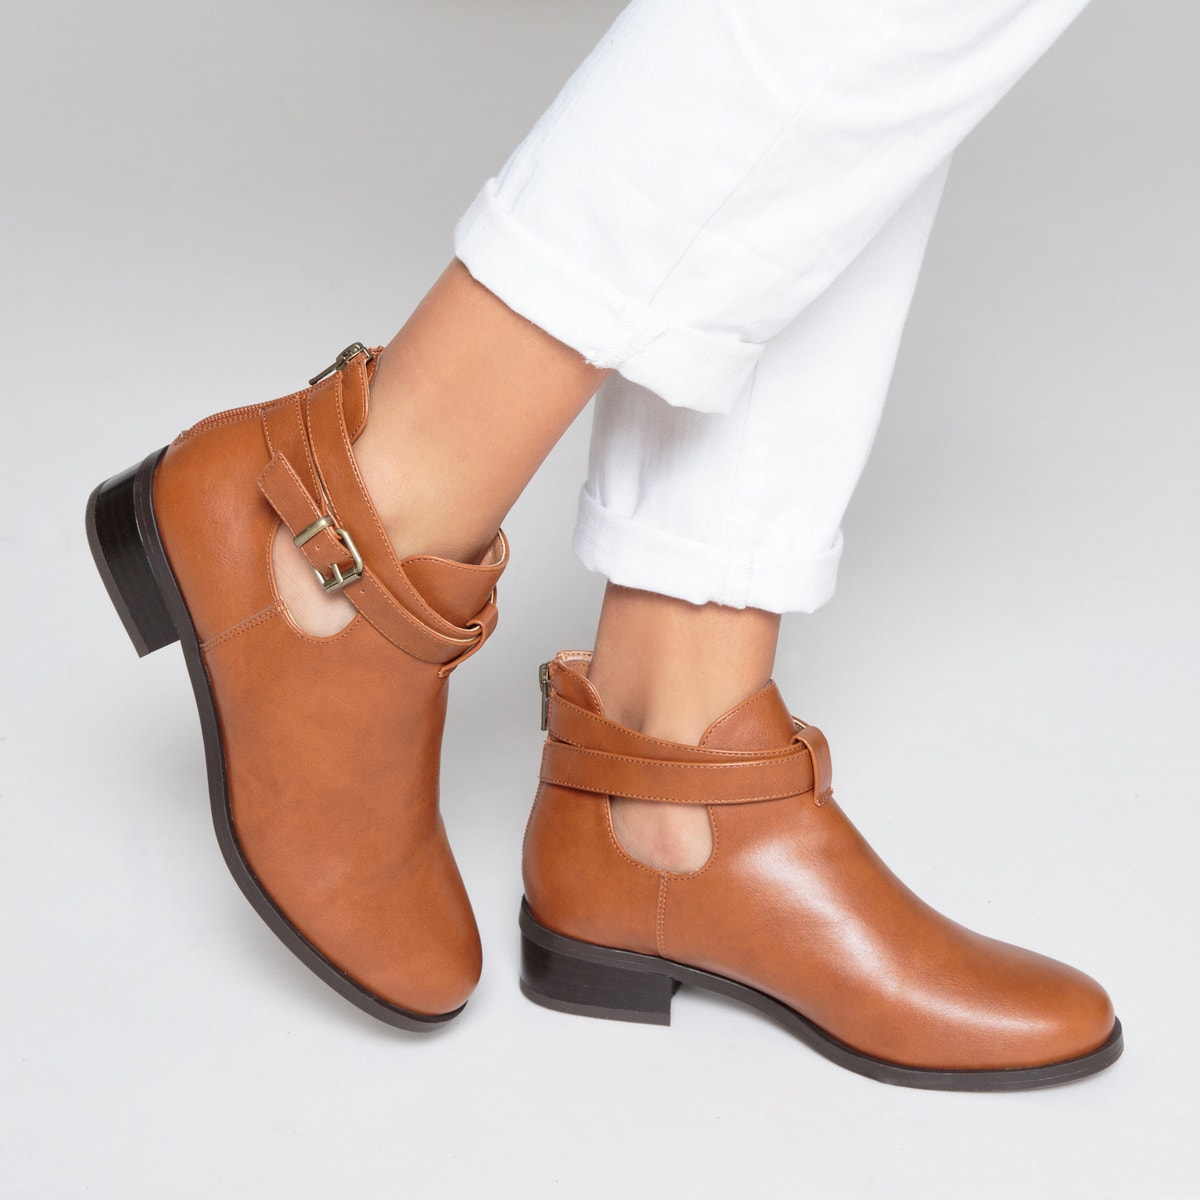 7c29e227987 Womens Faux Leather Cut-Out Cut-Out Cut-Out Buckled Ankle Boots ...